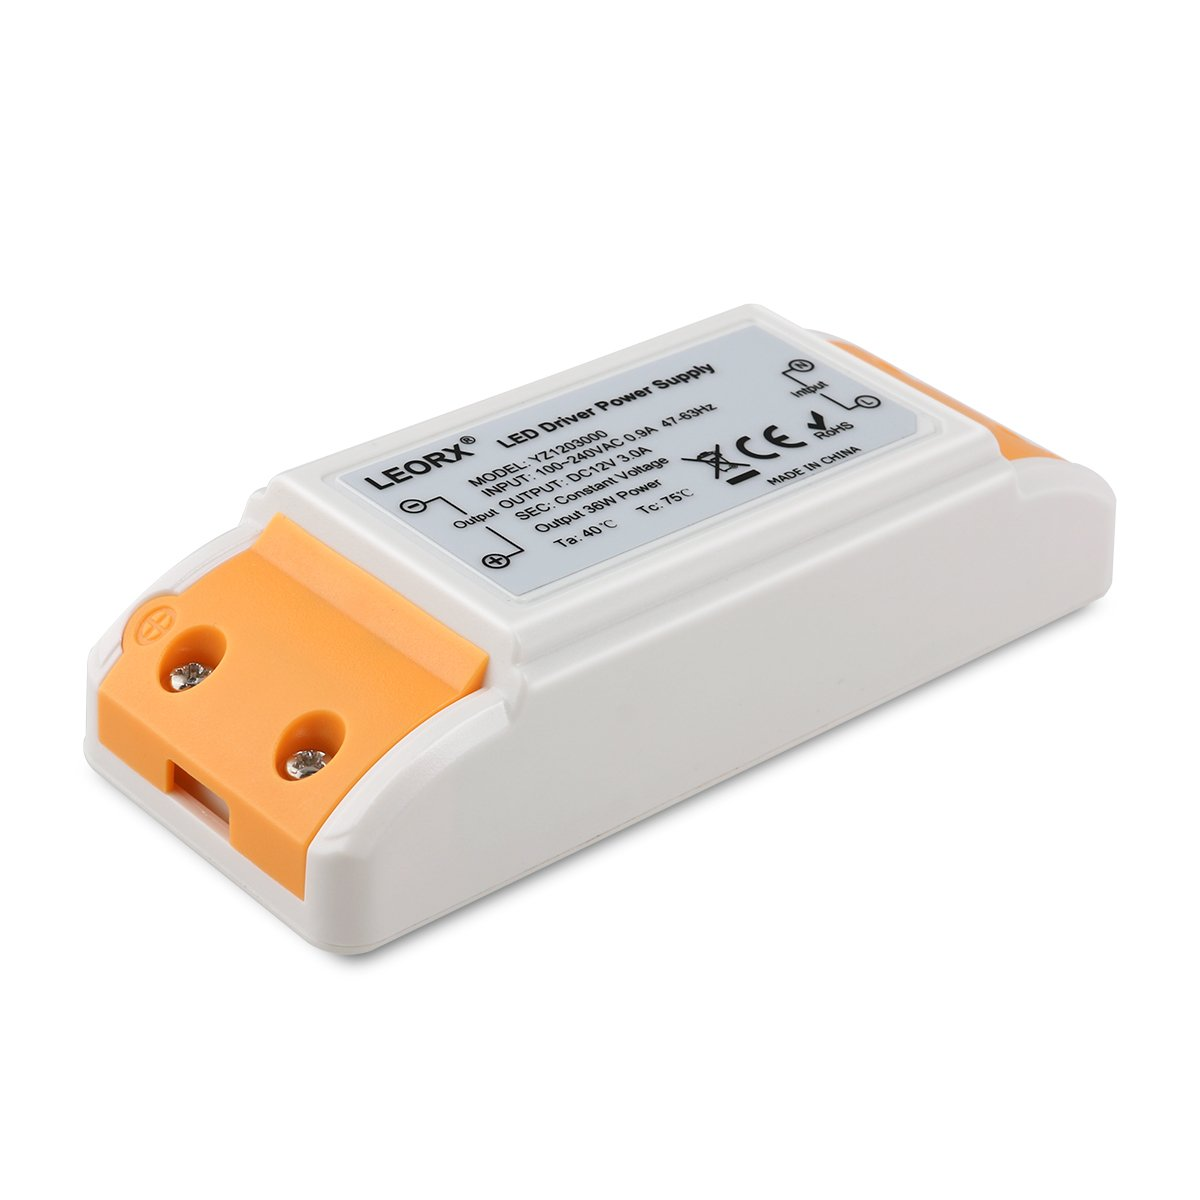 Best Rated In Lighting Low Voltage Transformers Helpful Customer Electronics Technology 5vdc To 12vdc Lt1070 Boost Converter Circuit Leorx Led Transformer Power Supply 36w 12v Dc 3a Constant For Strip Lights And G4 Mr11 Mr16 Light Bulbs